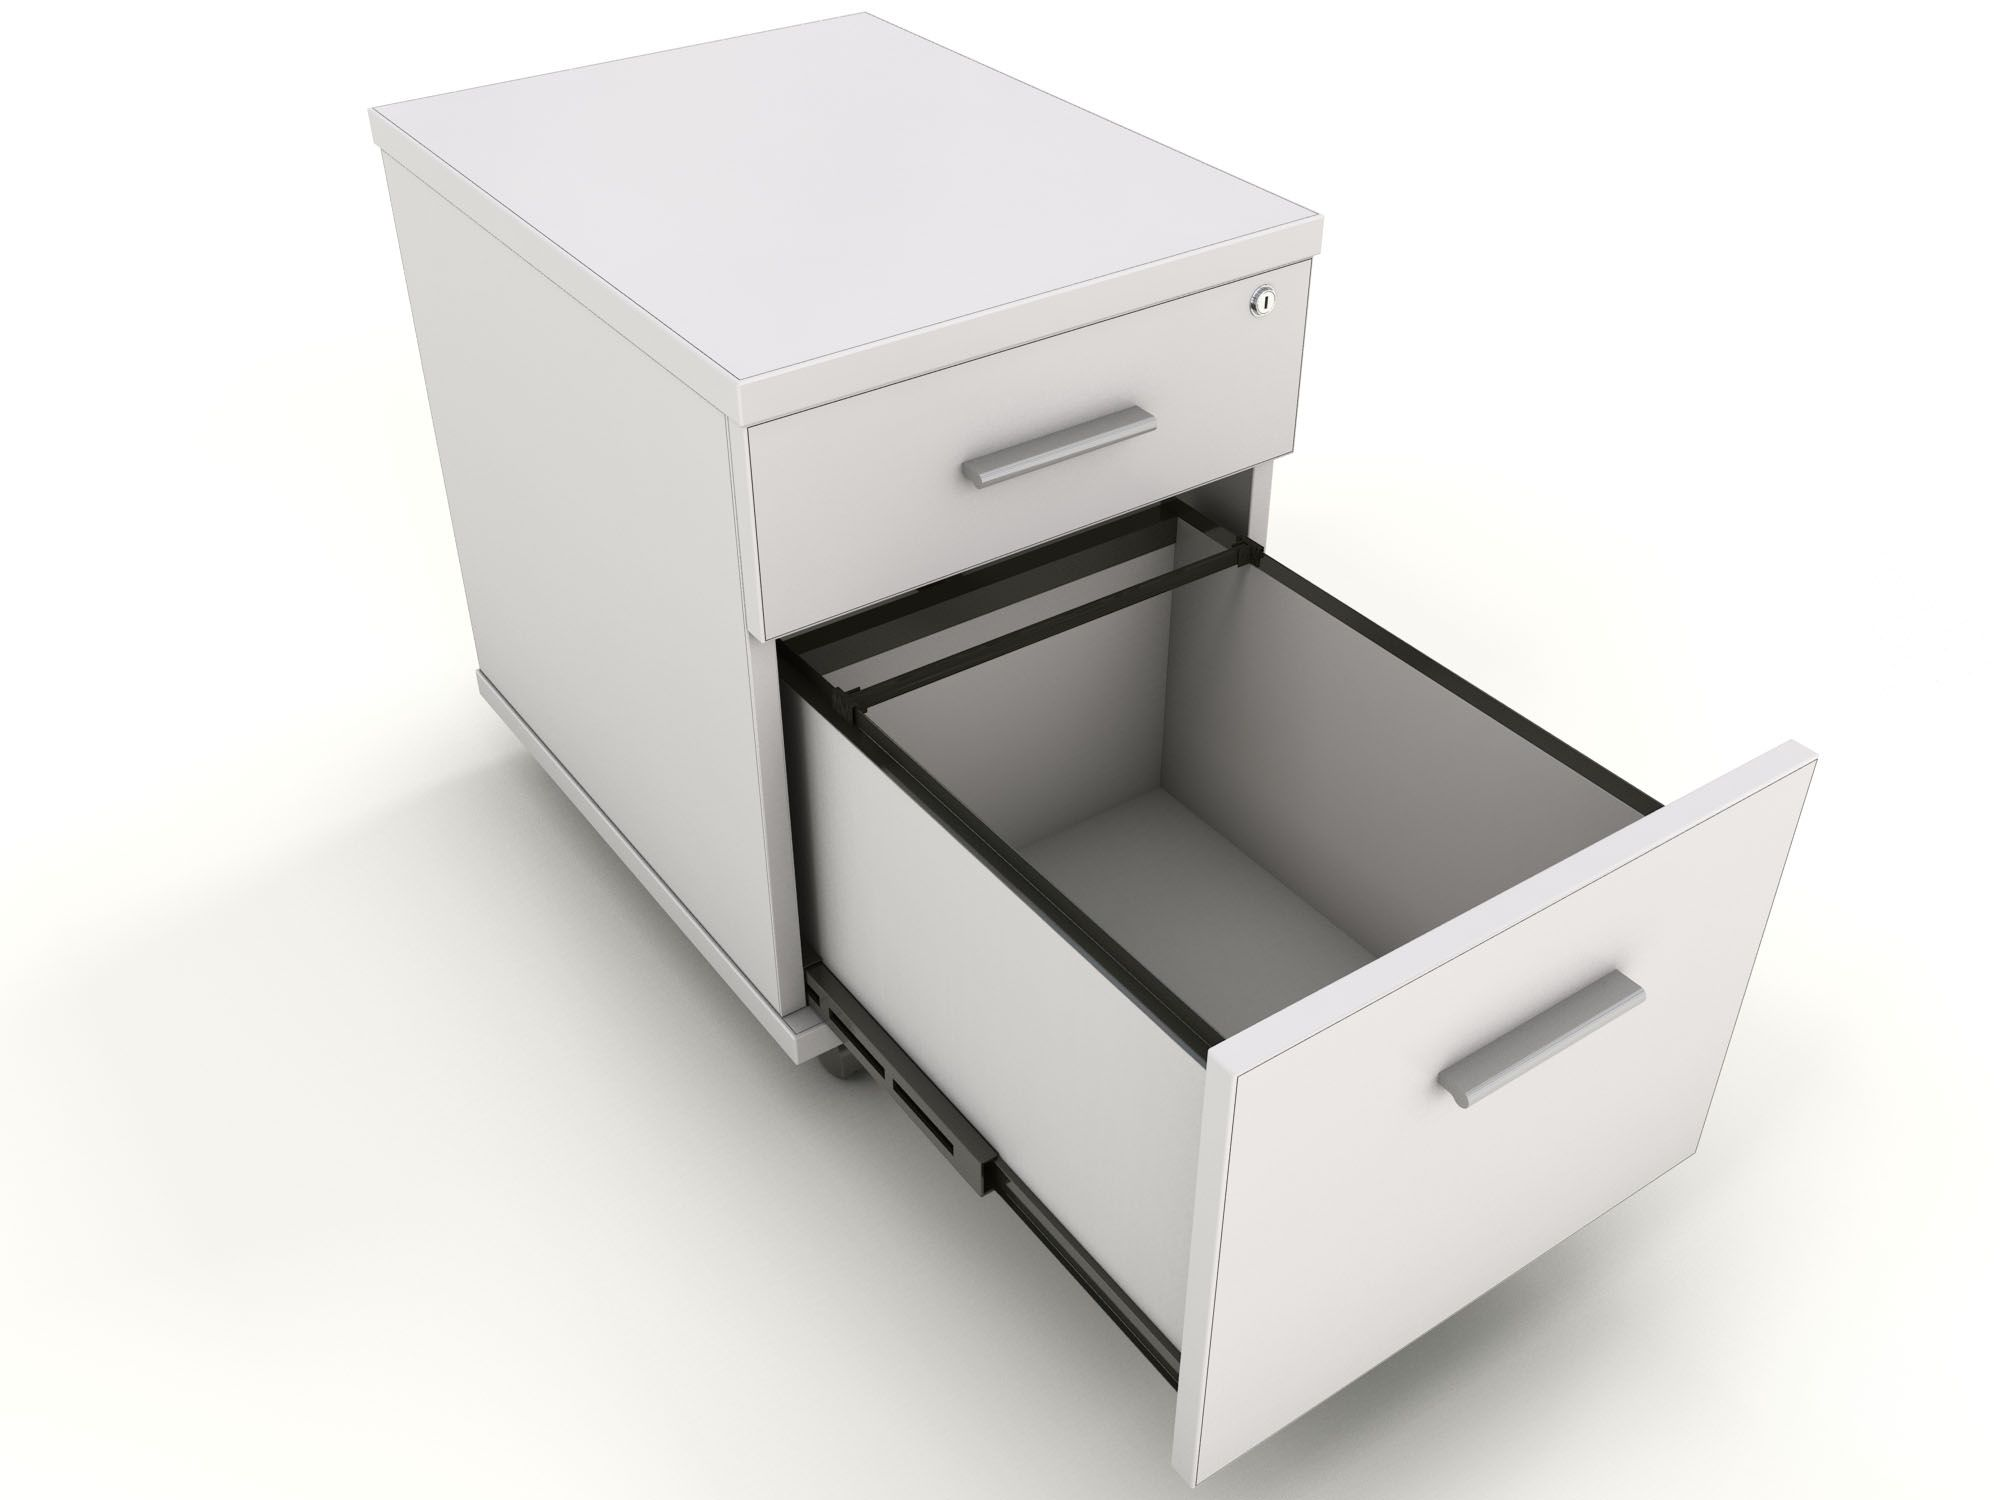 550mm (H) x 400mm (W) x 520mm (D) White 2-Drawer Under Desk Mobile Pedestal - £89. Designed to fit under cable trays. 4-sided drawer box construction for extra strength.